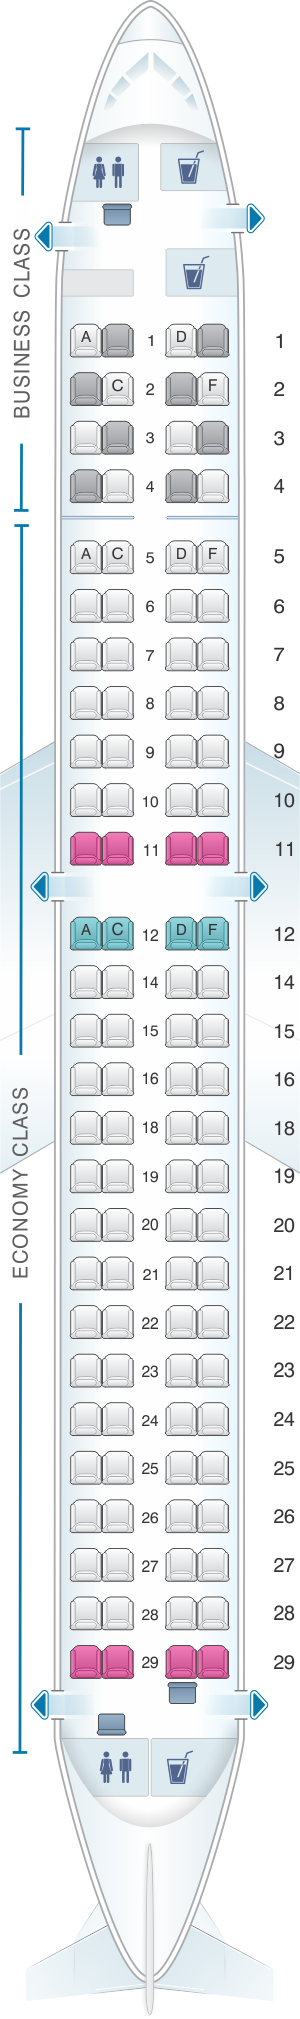 Seat map for Lufthansa Embraer E190